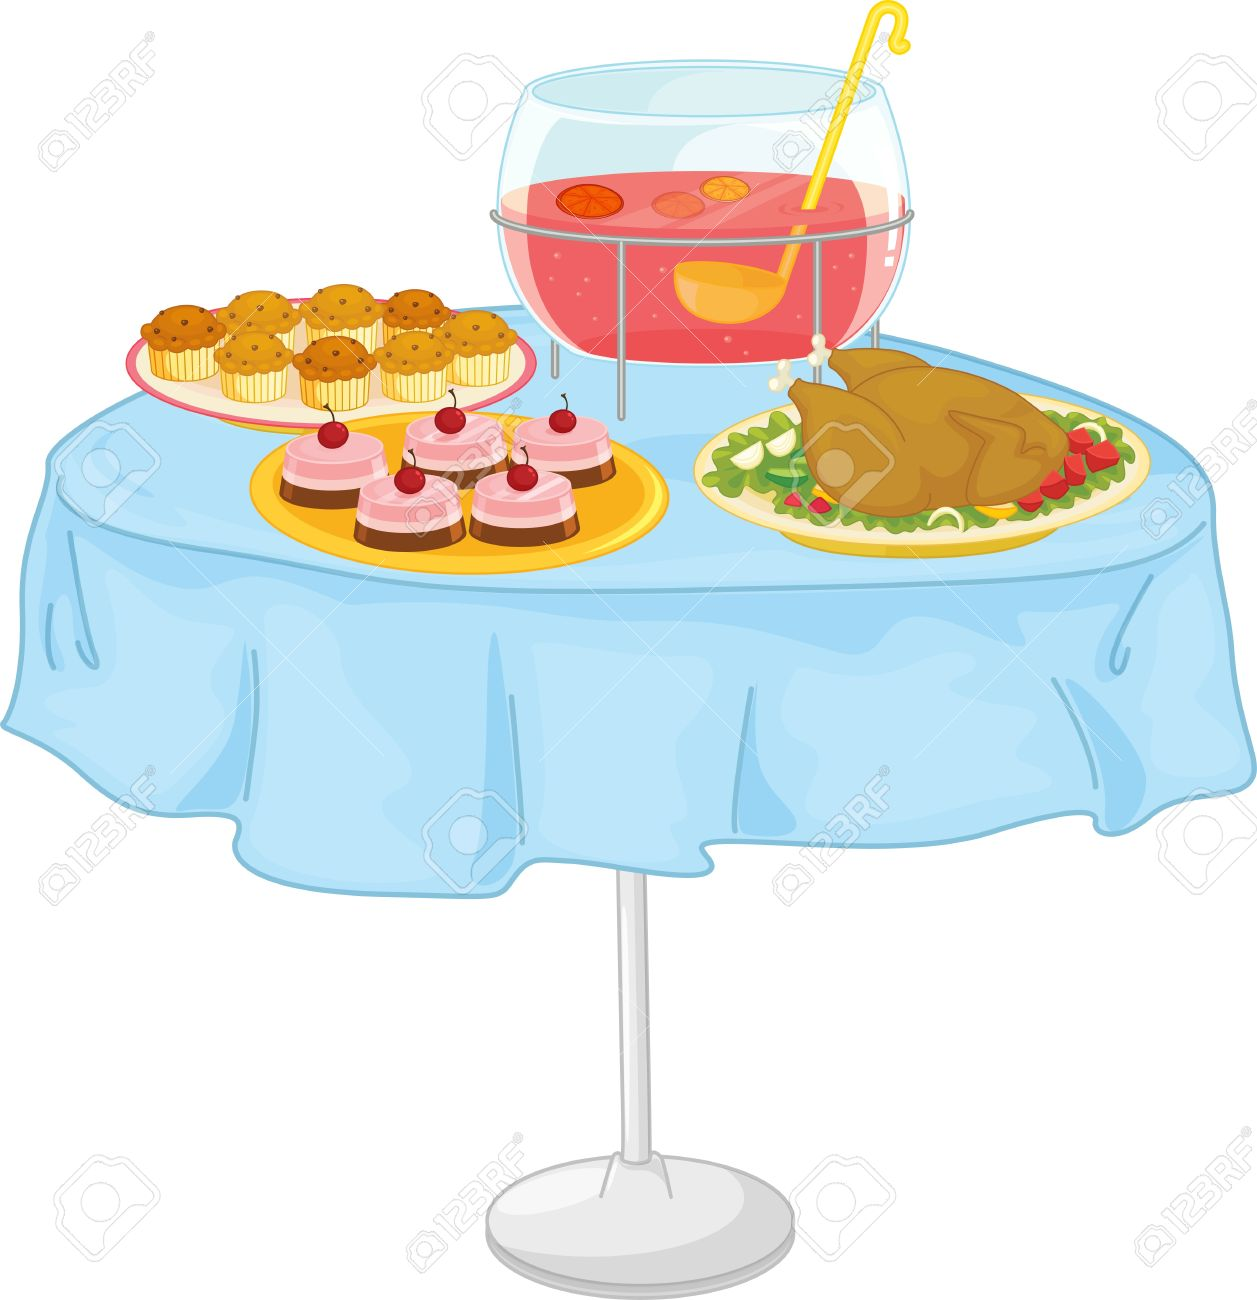 Illustration Of A Food On White Royalty Free Cliparts, Vectors.